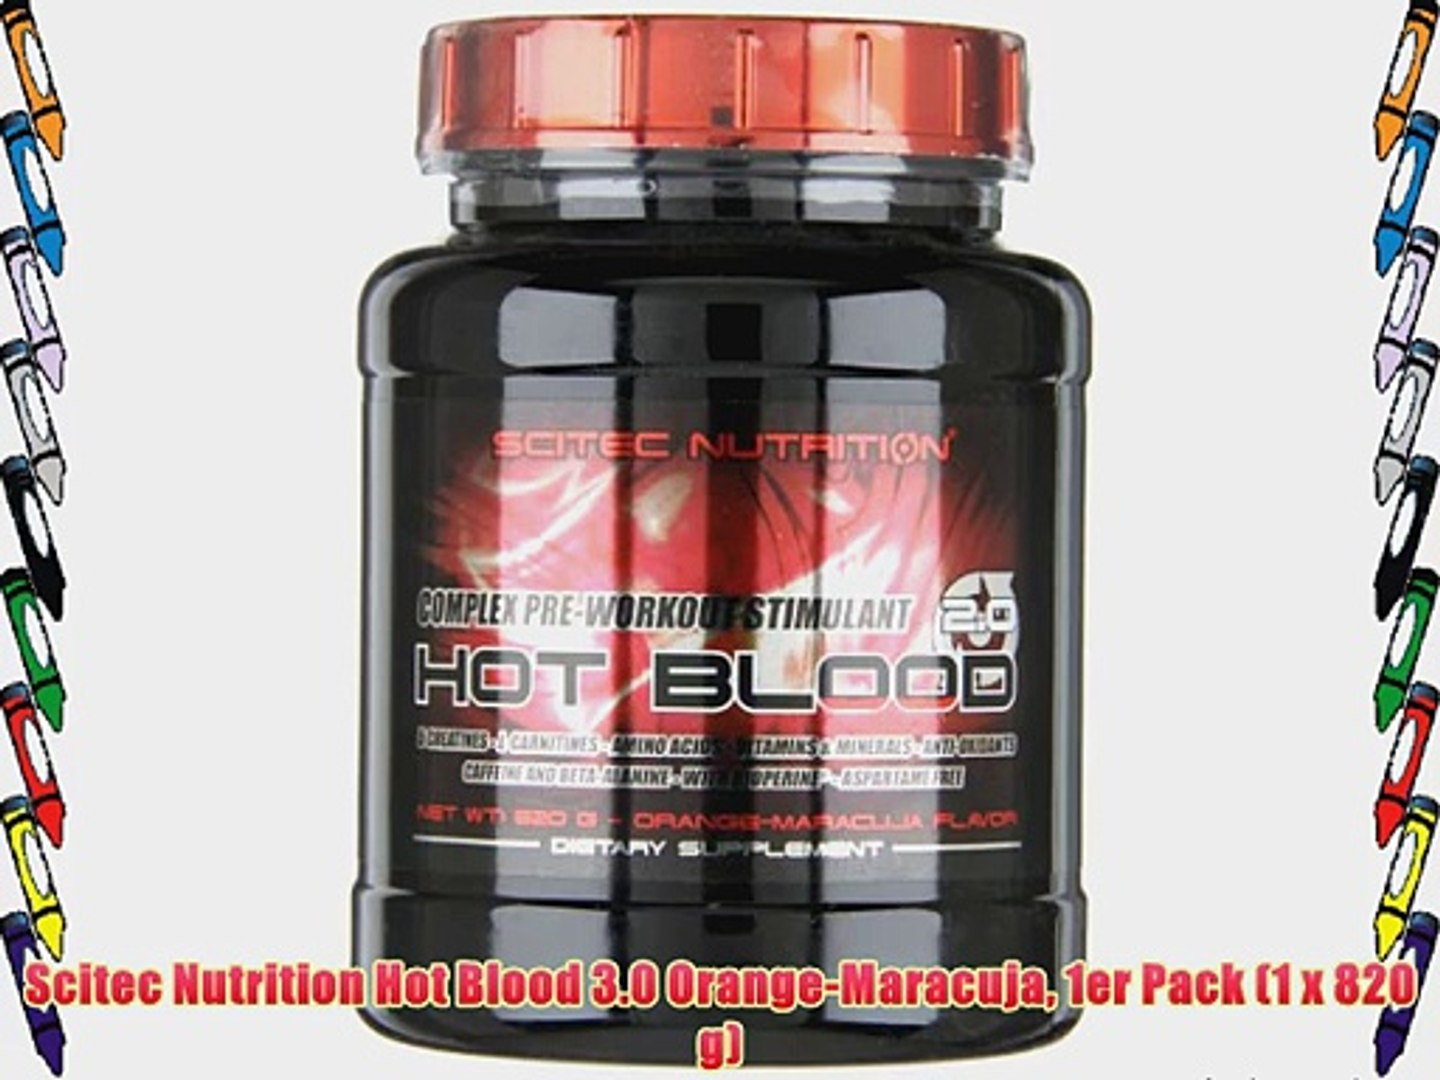 Scitec Nutrition Hot Blood 3.0 Orange-Maracuja 1er Pack (1 x 820 g)